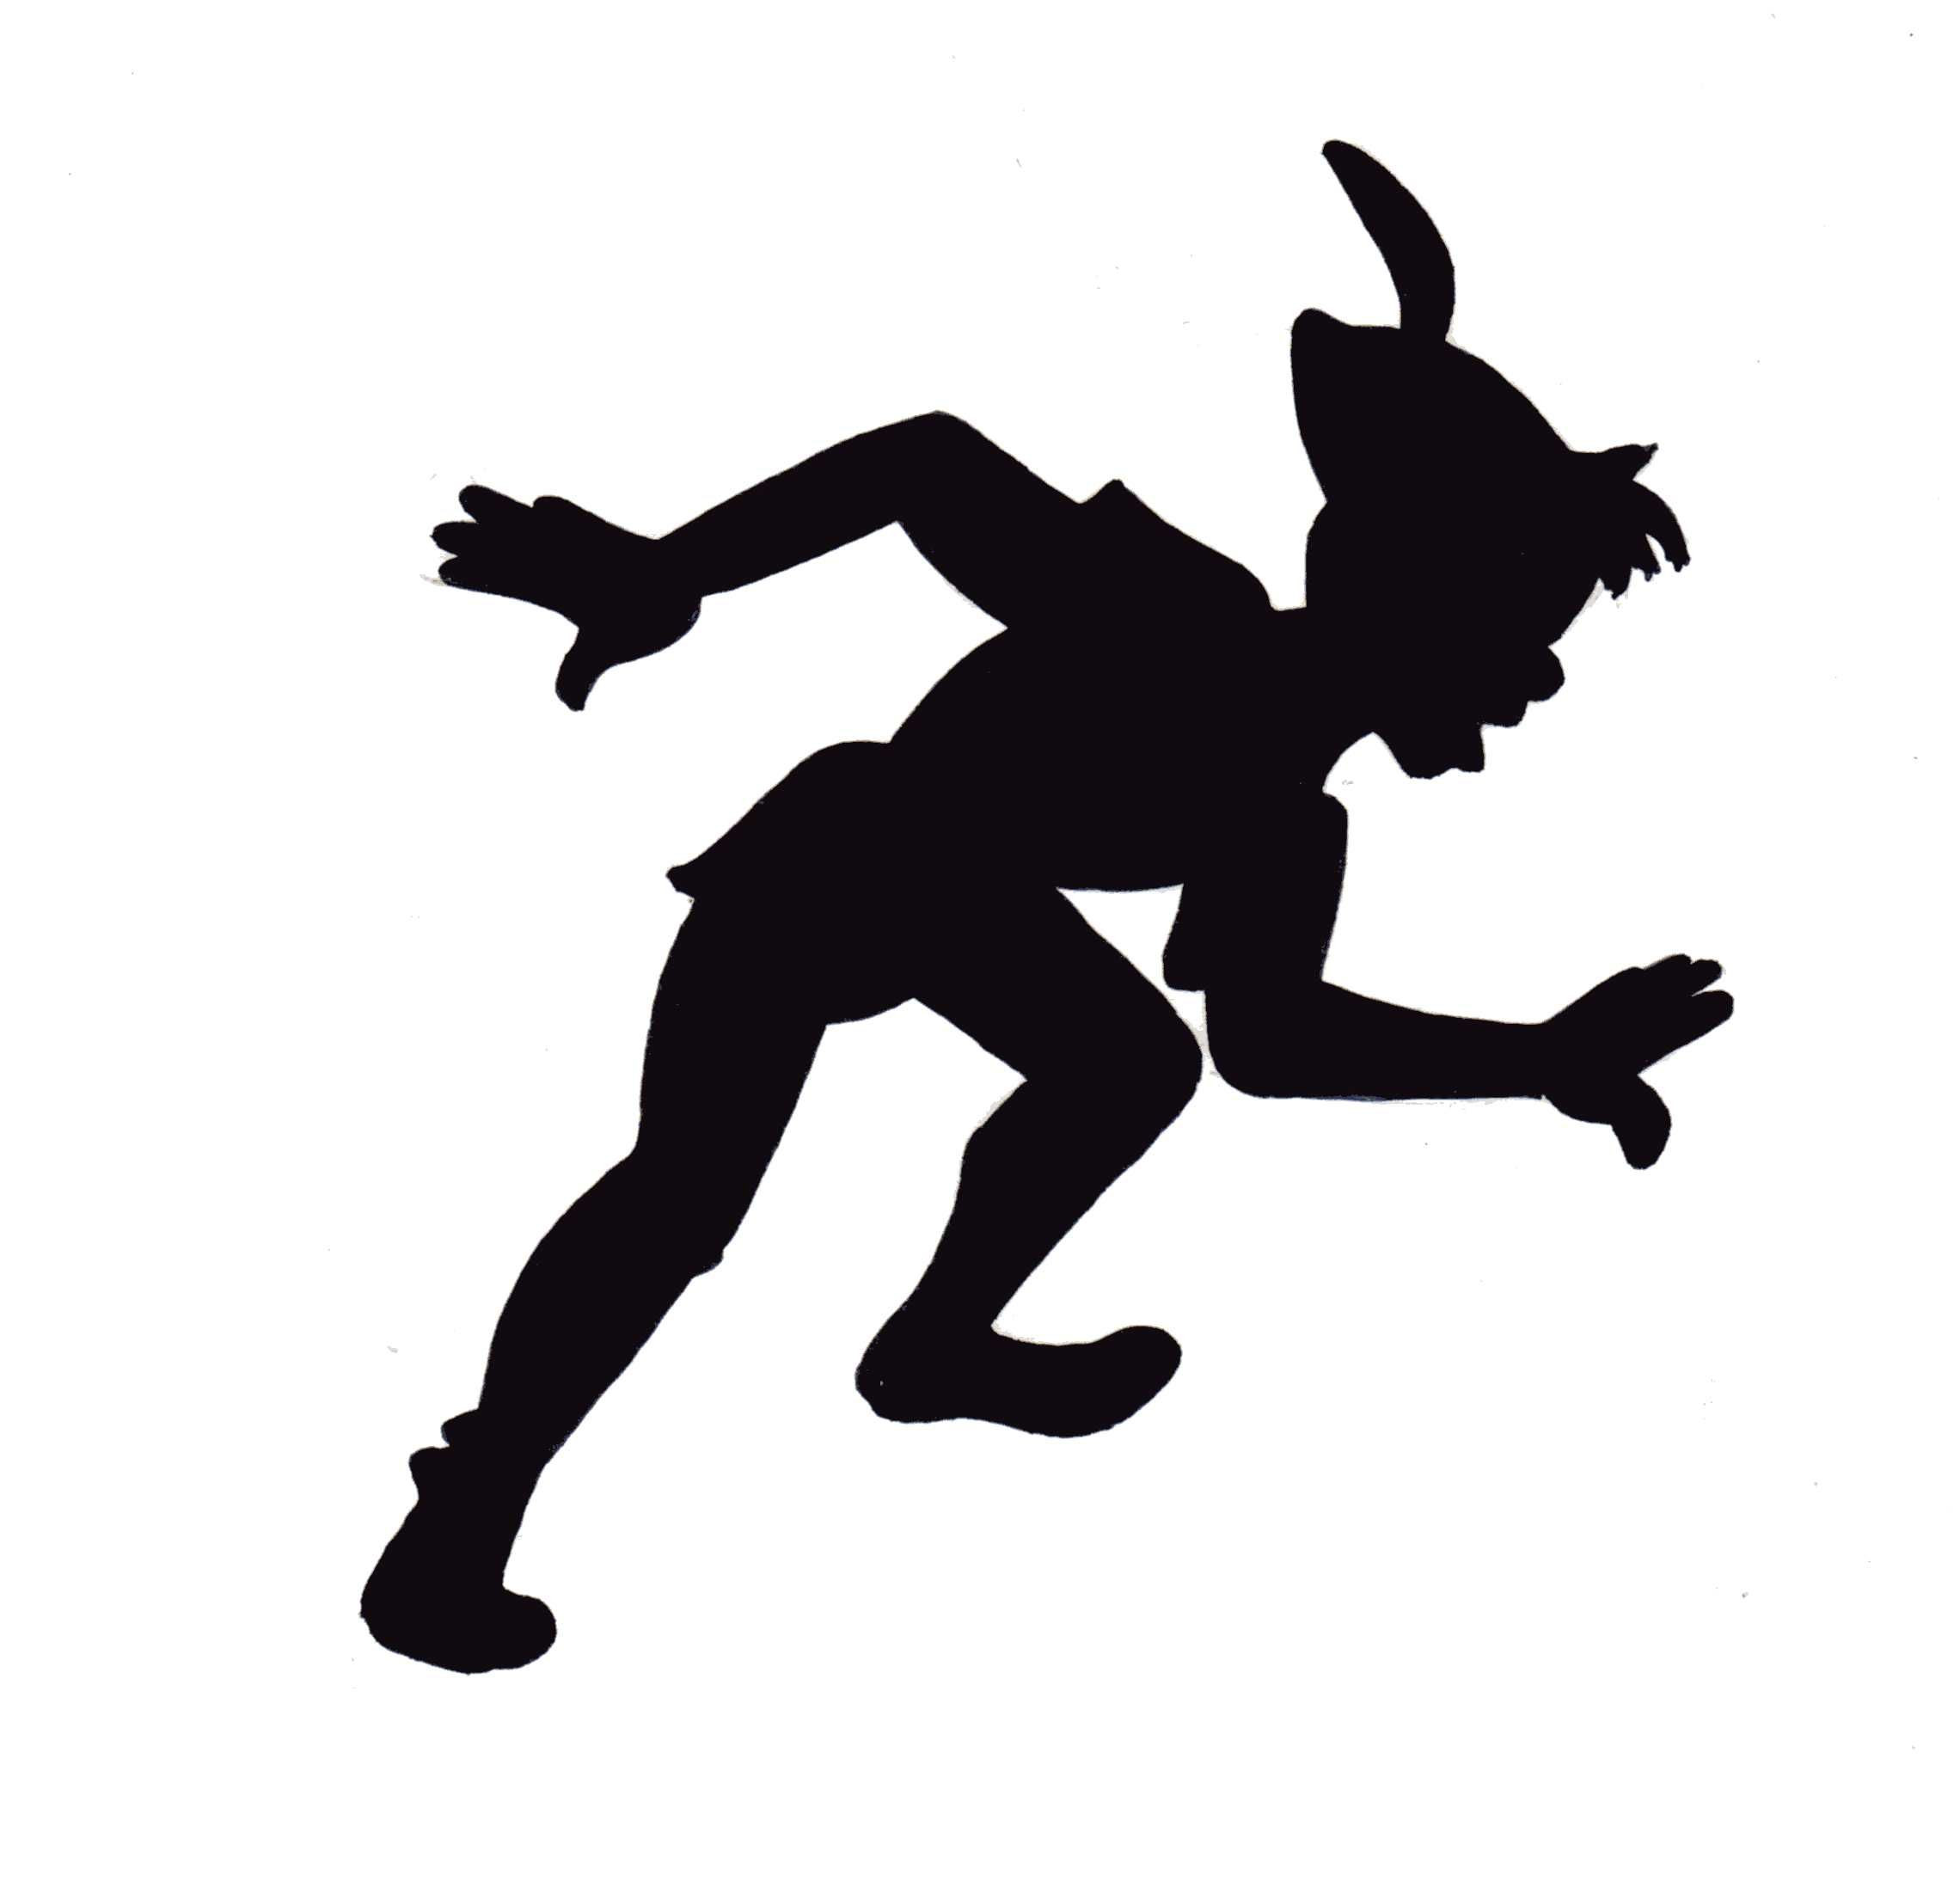 2280x2188 Peter Pan Flying Beautiful Wall Decals Fancy Silhouette Fiscalreform